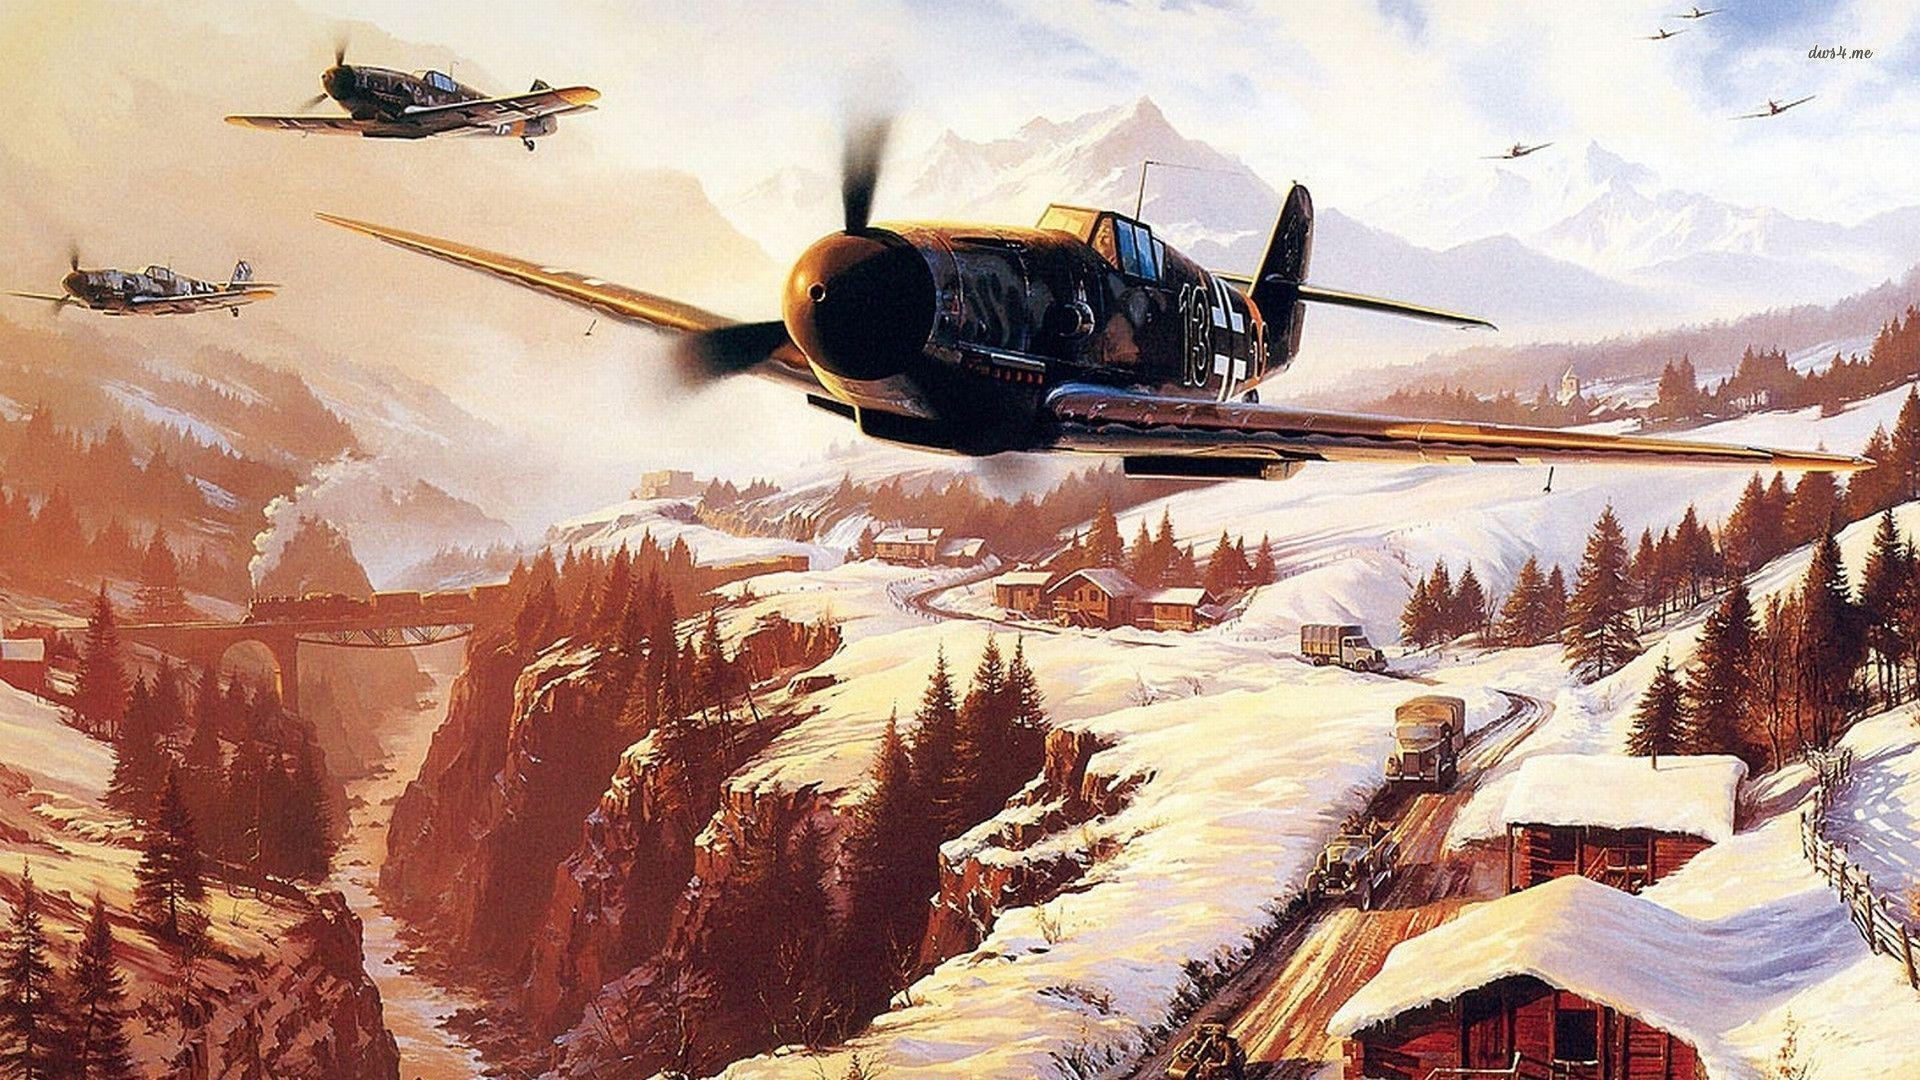 Ww2 wallpapers wallpaper cave - Cod ww2 4k pc ...